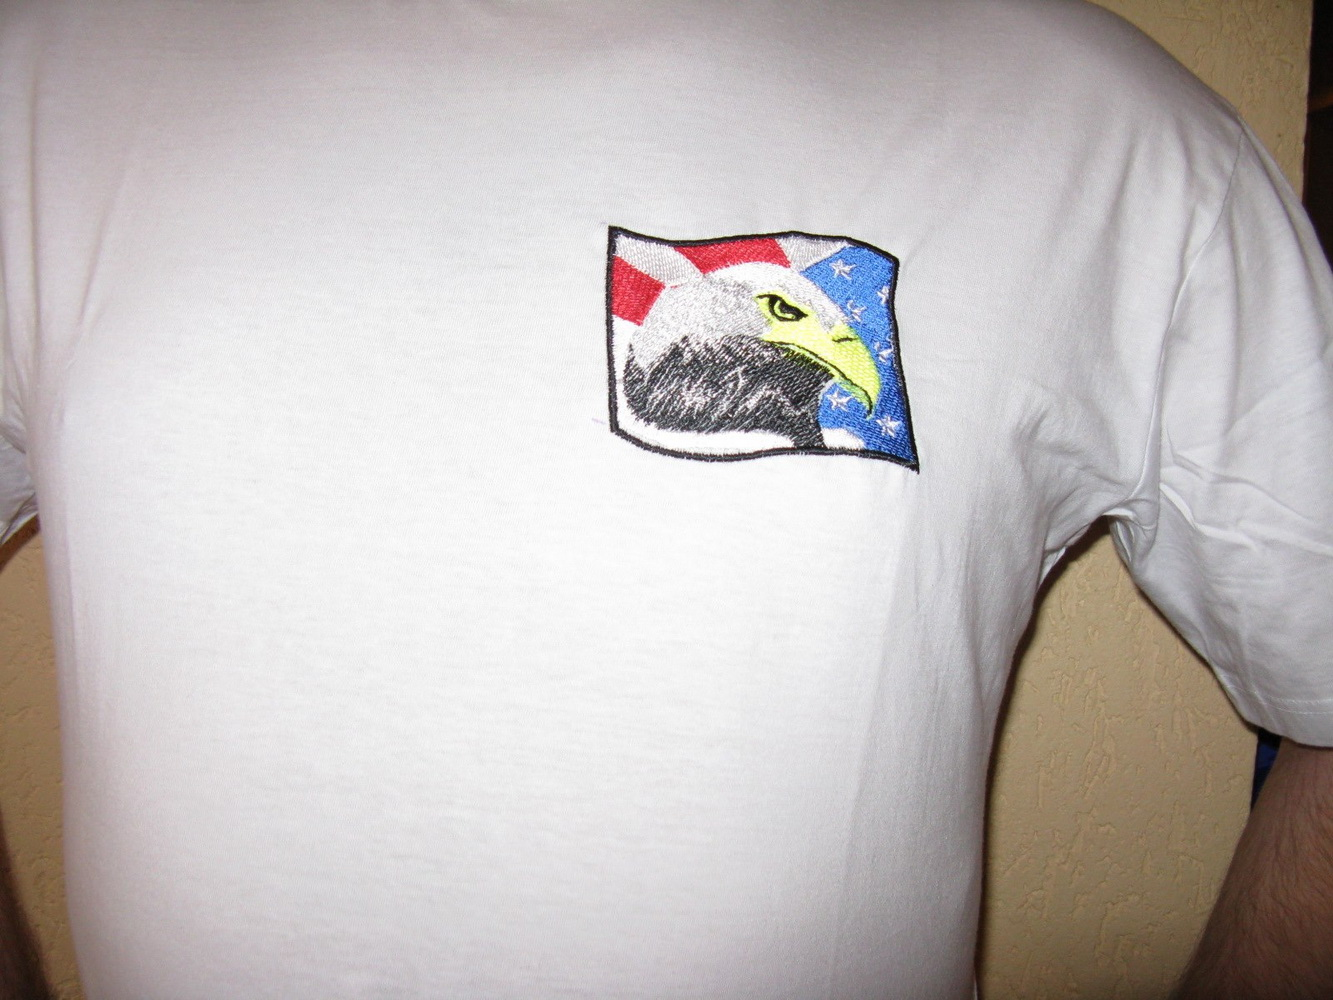 American eagle design on t-shirt 1